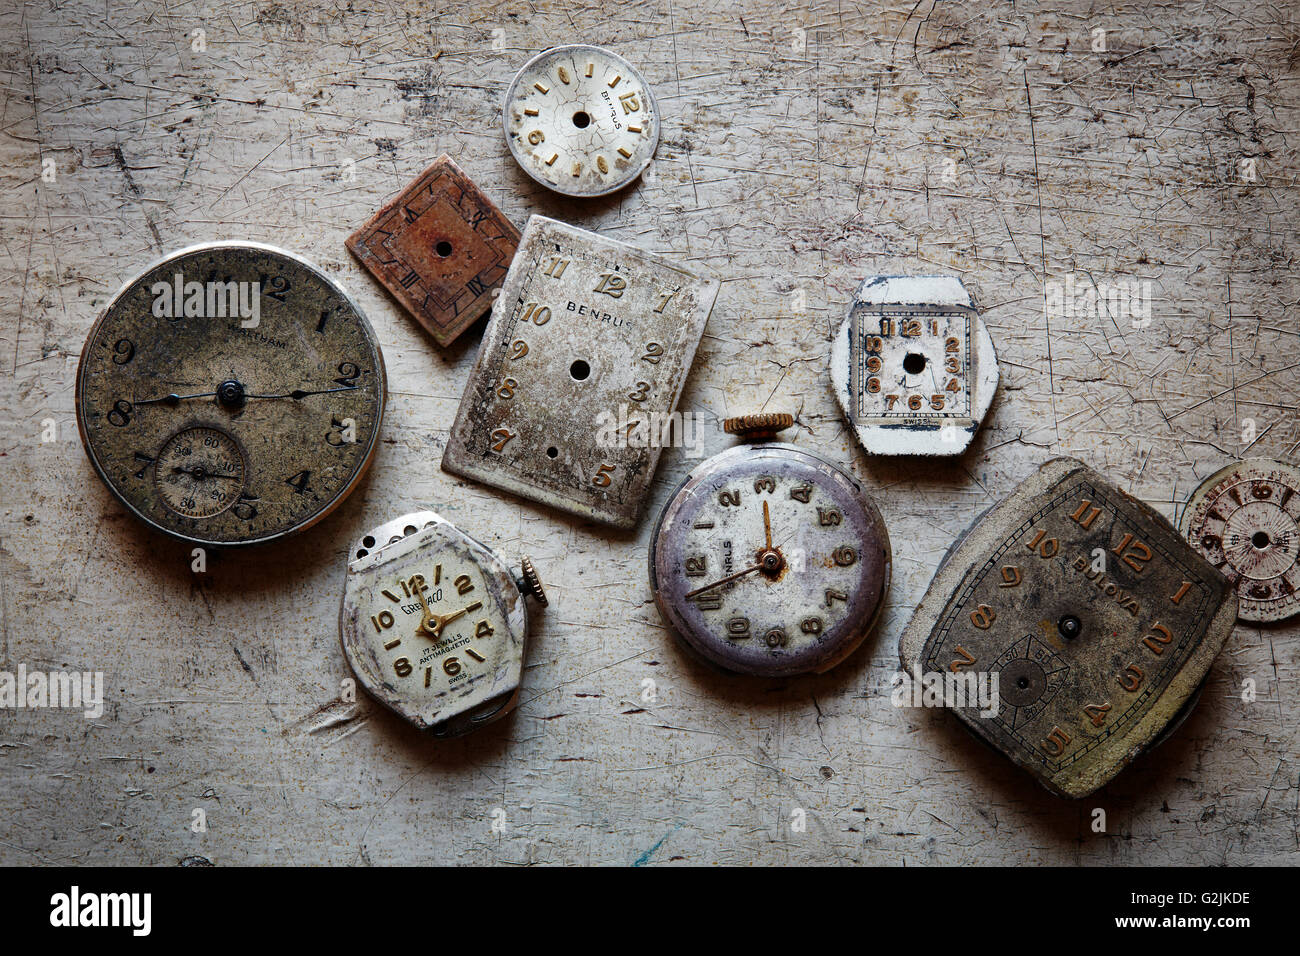 Assortment of Watch Faces - Stock Image